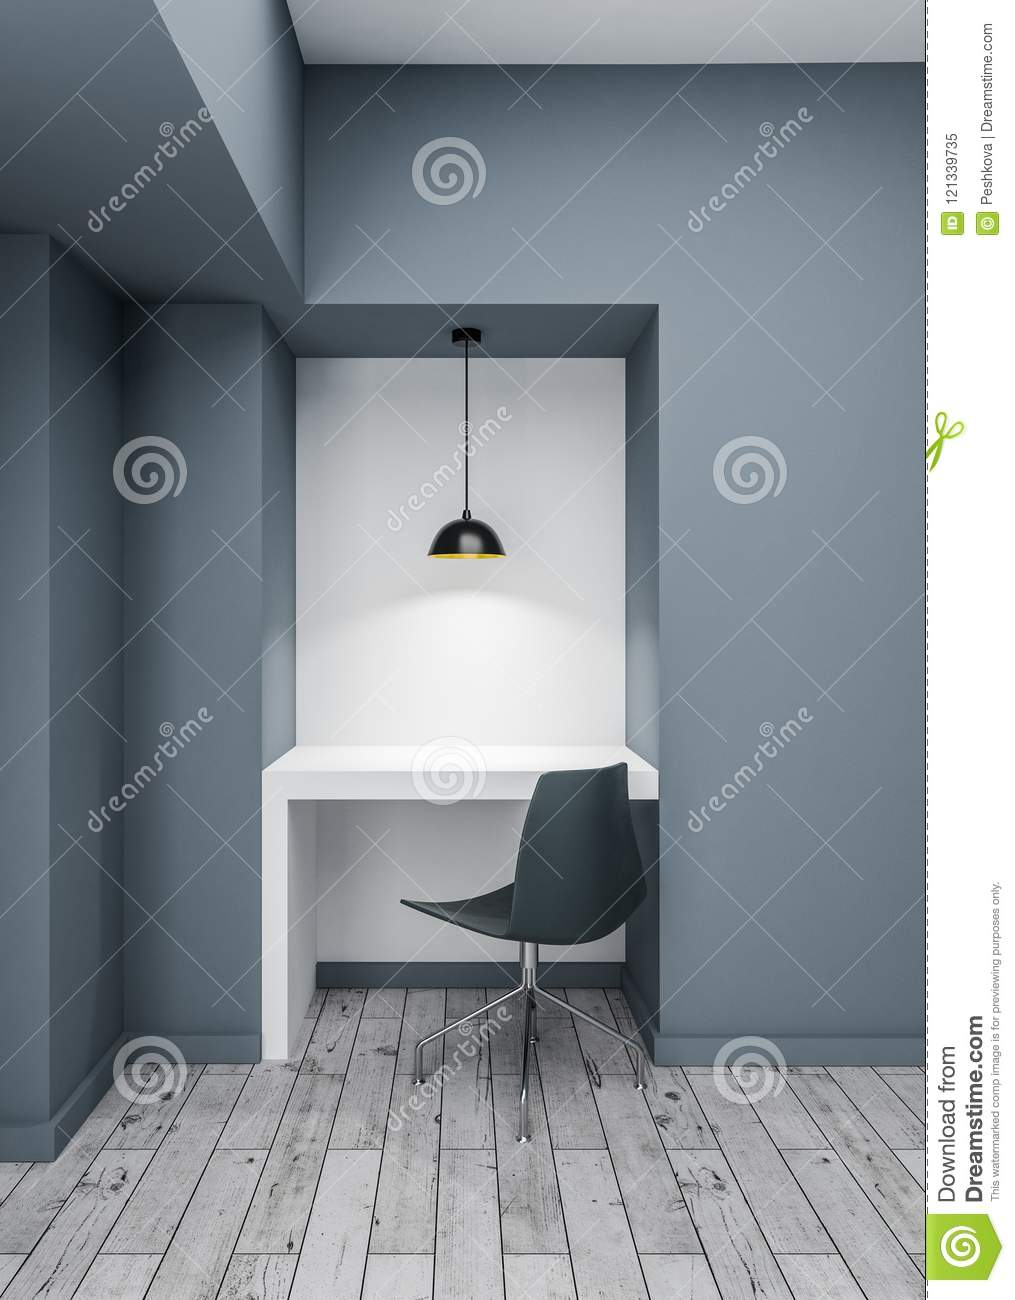 Image of: White Desk In Empty Room Stock Image Image Of Light 121339735